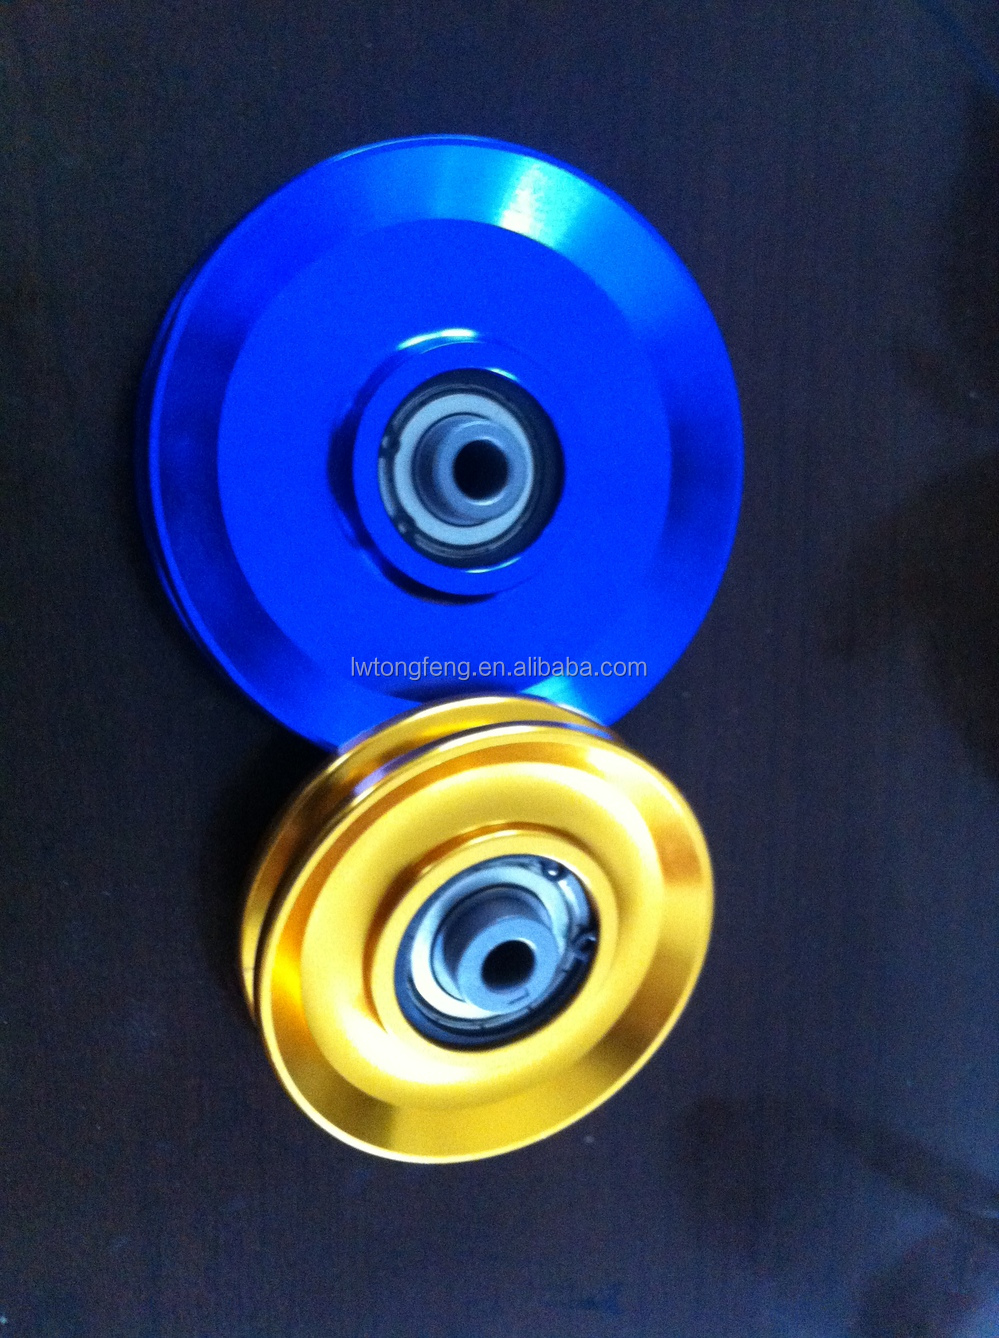 Pulley Wheels/metal Pulleys/ Colorful In Gym Equipment Names - Buy Plastic  Pulley Wheels,Decorative Metal Wheel,Cable Pulley Wheels Product on